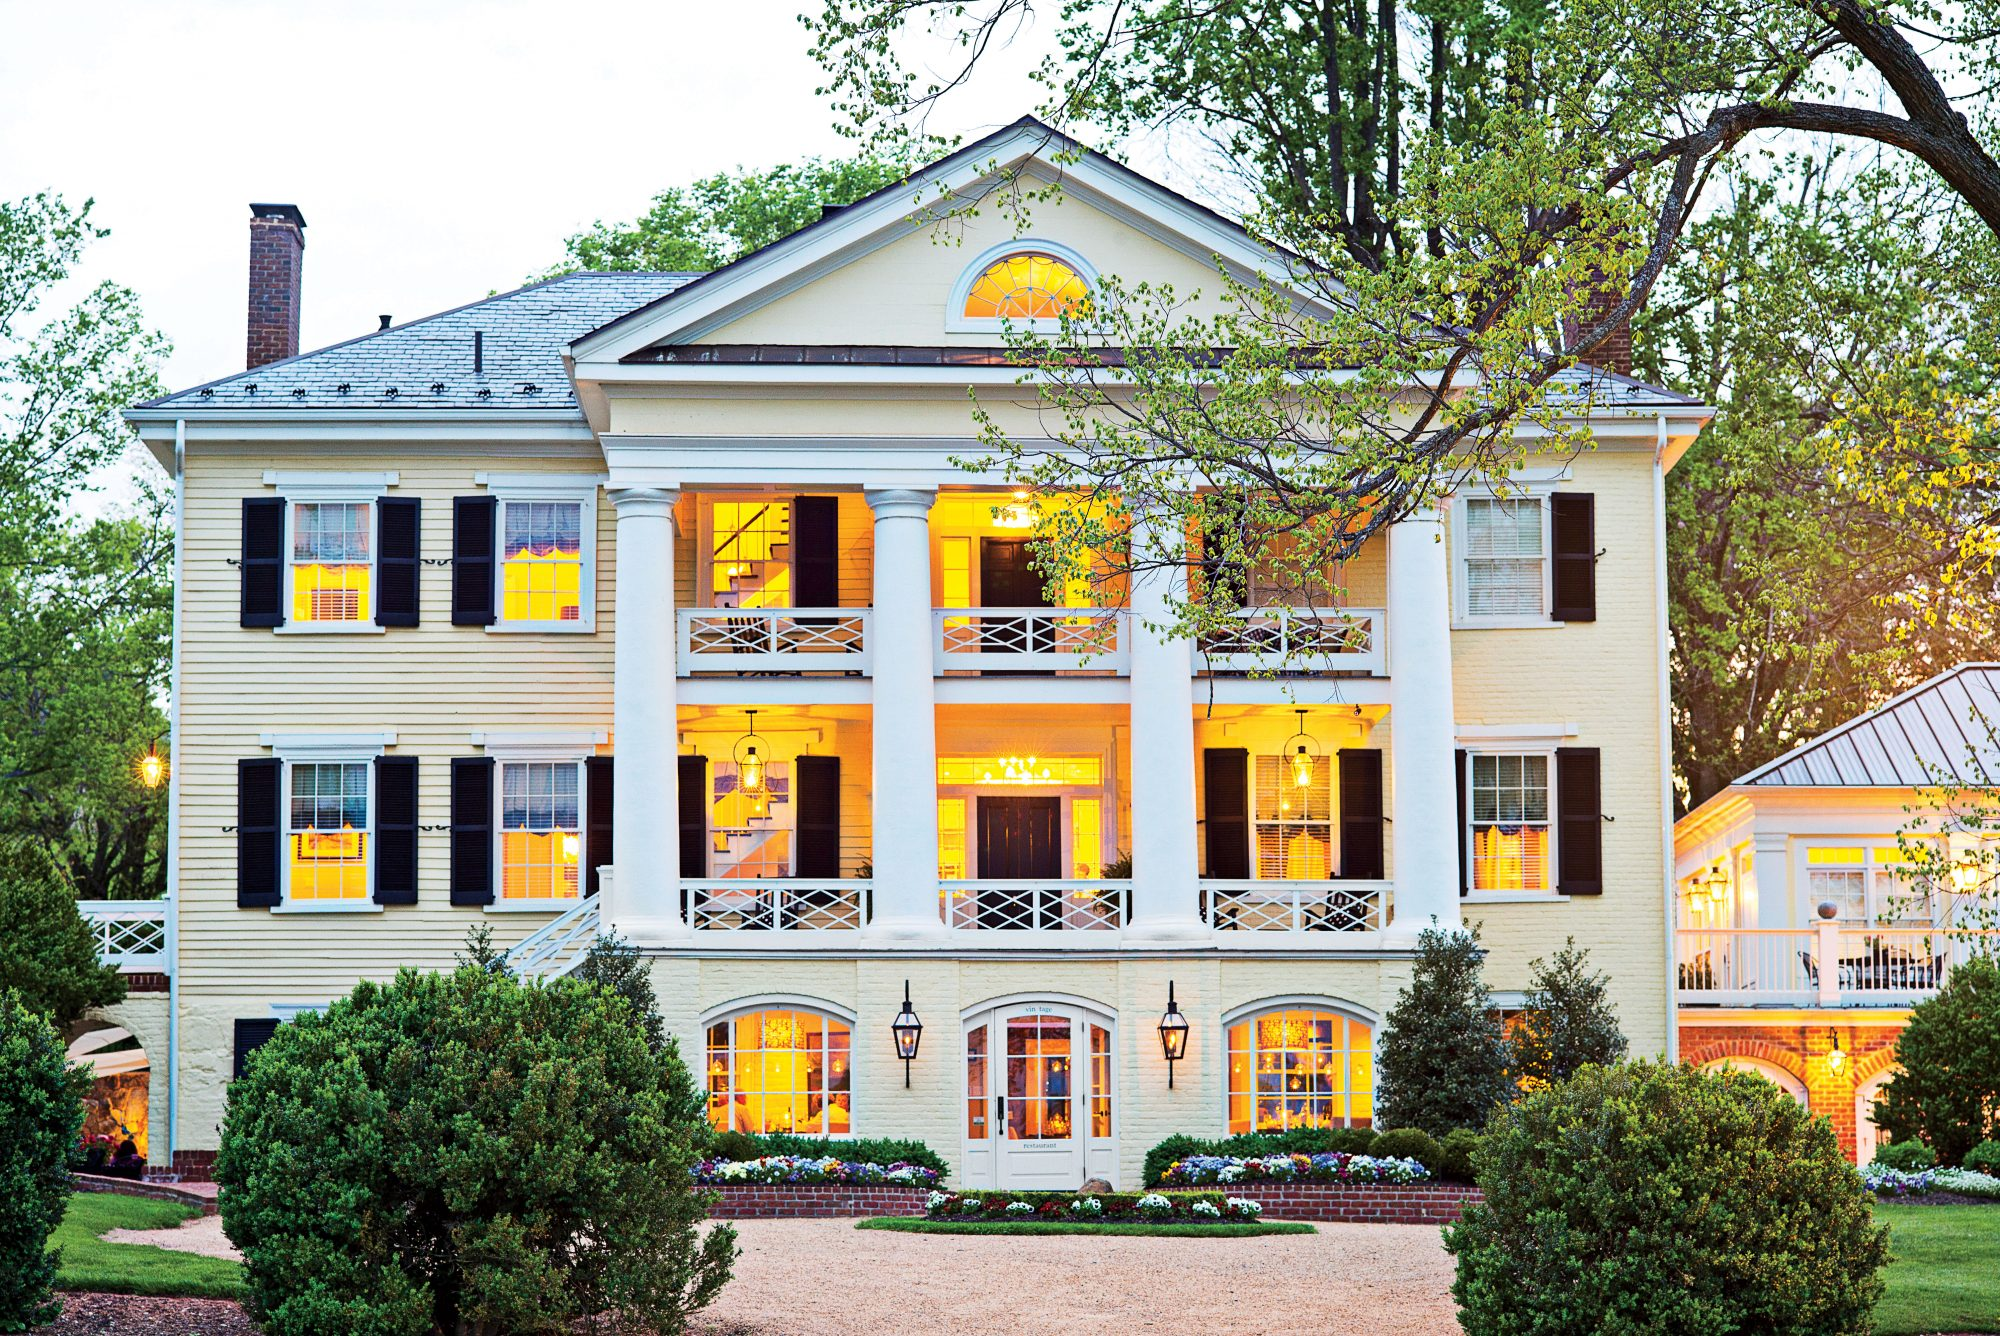 The Inn at Willow Grove in Orange, Virginia